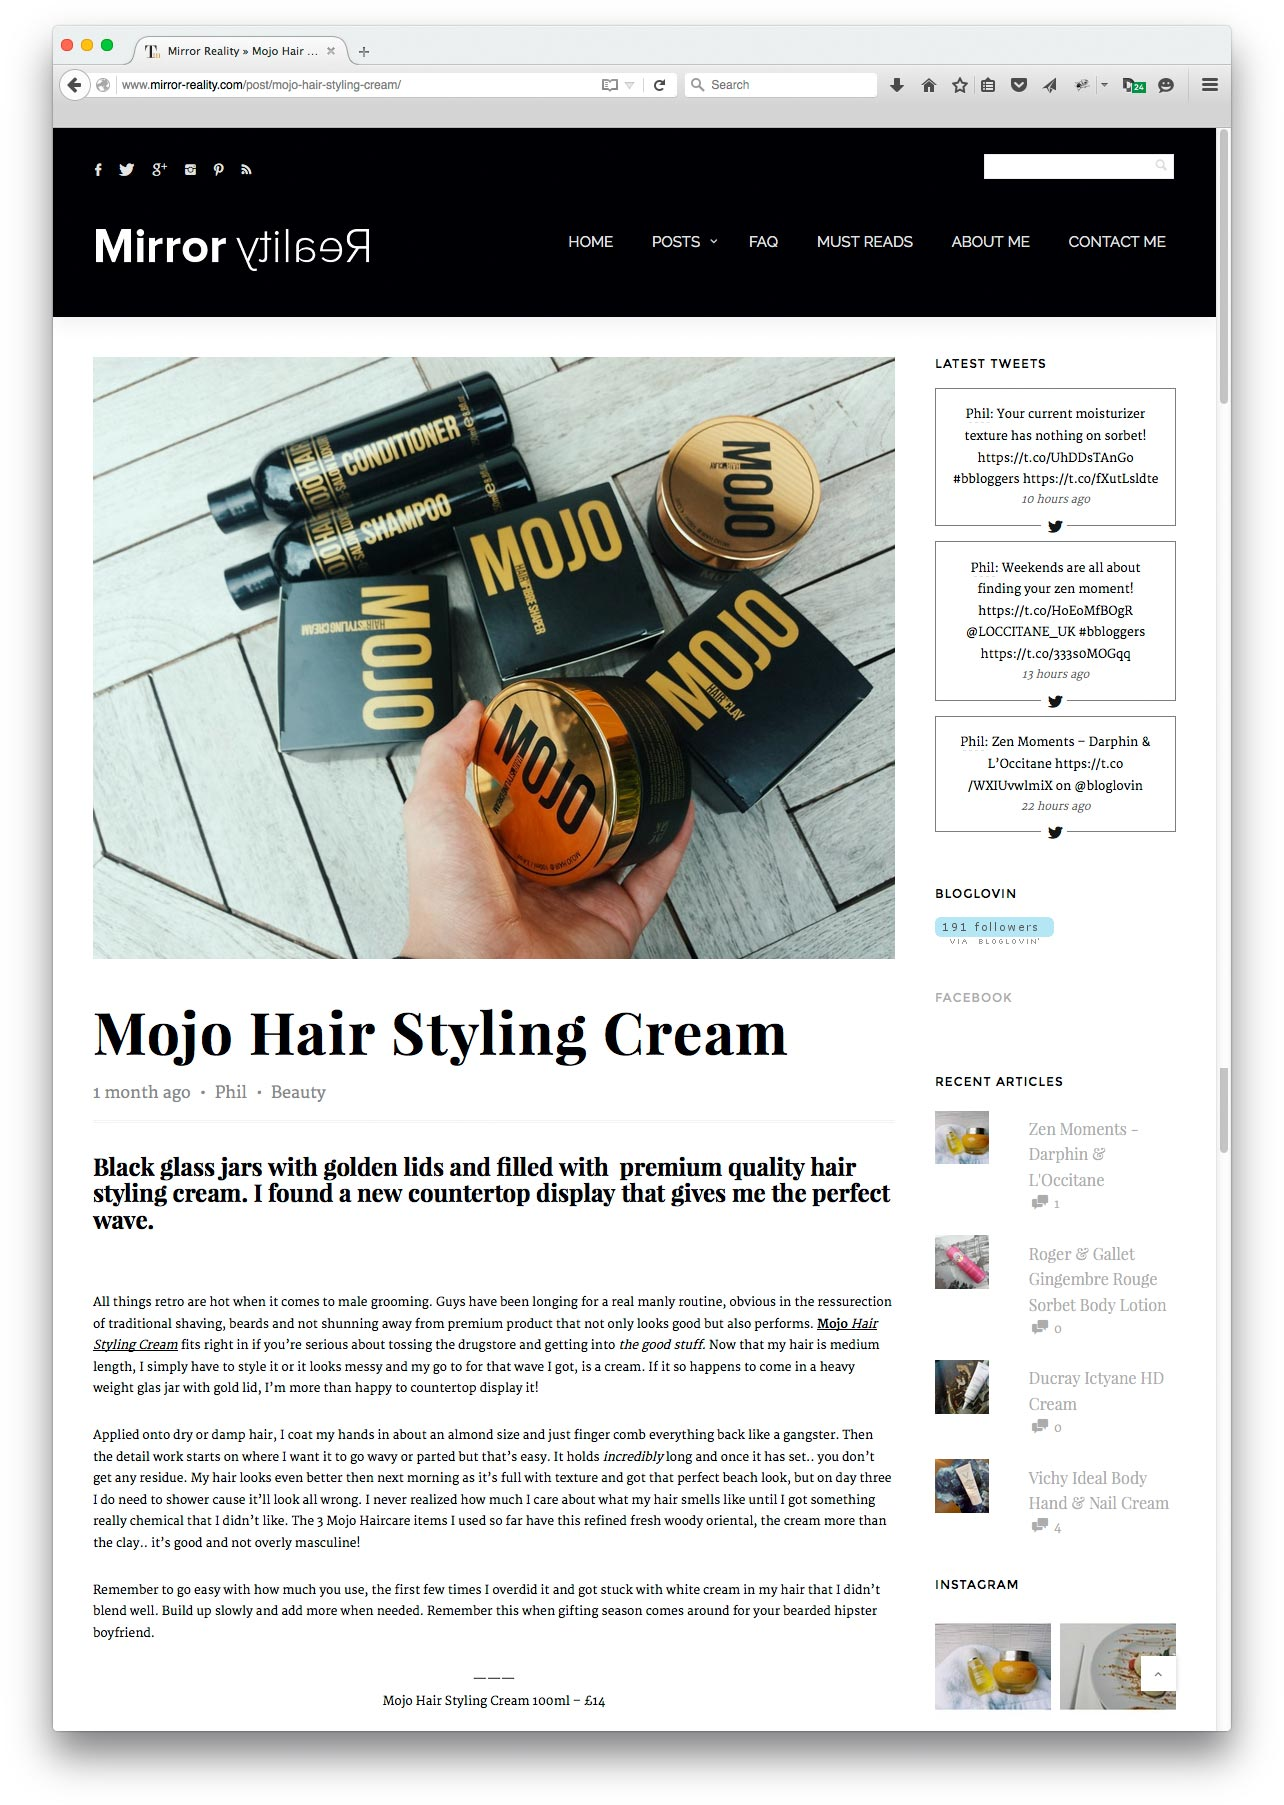 Phil at mirror-reality.com reviewed Mojo Hair's Styling Cream